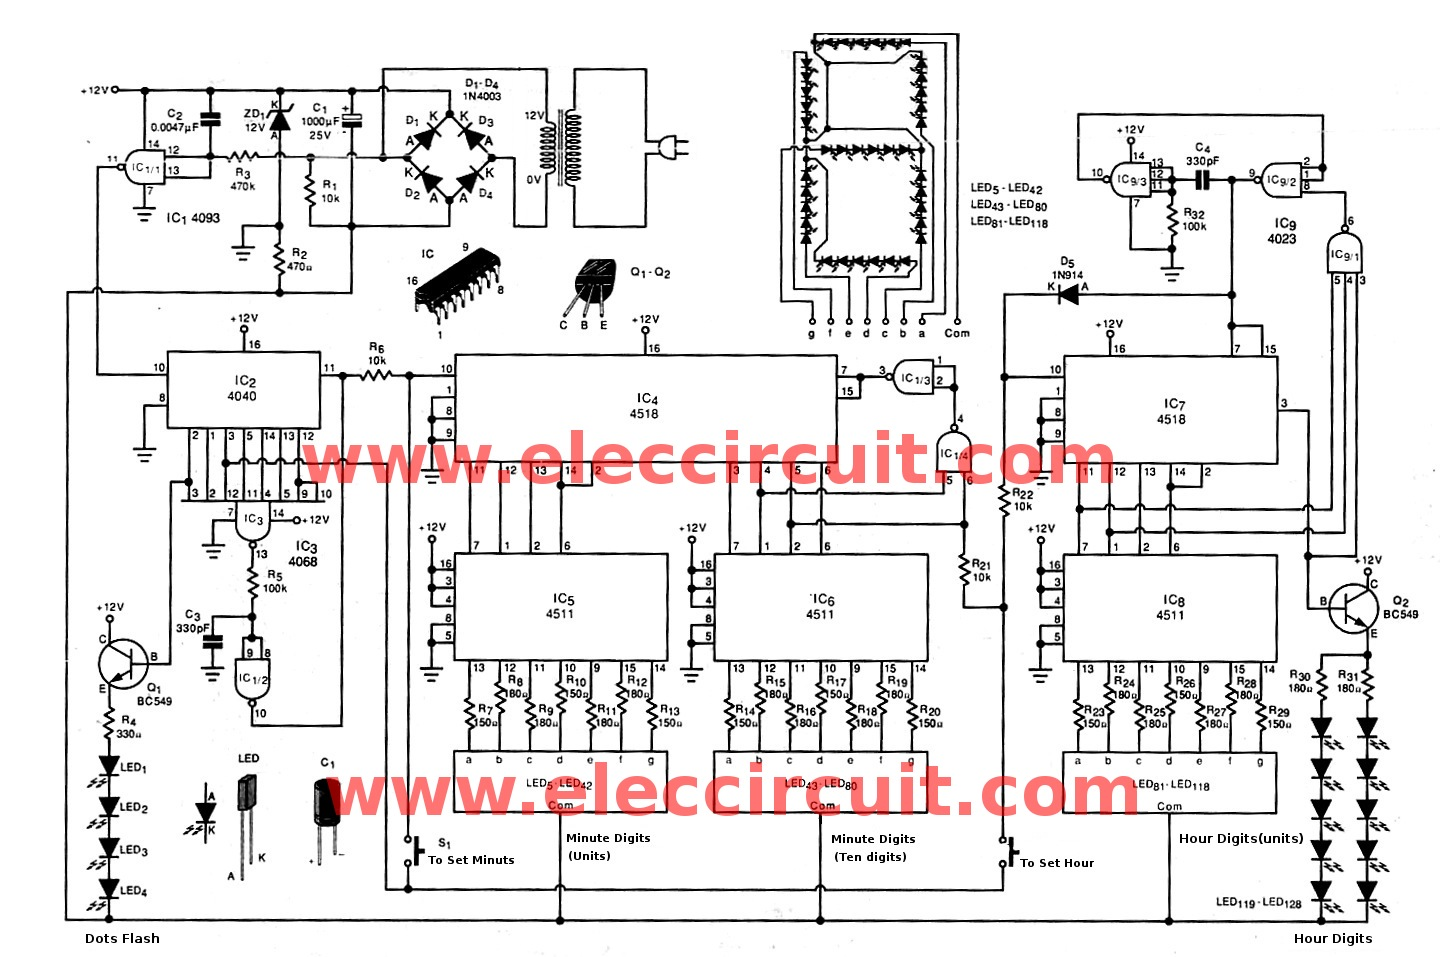 simple led clock circuit diagram meetcolab simple led clock circuit diagram jumbo digital clock circuit diagram